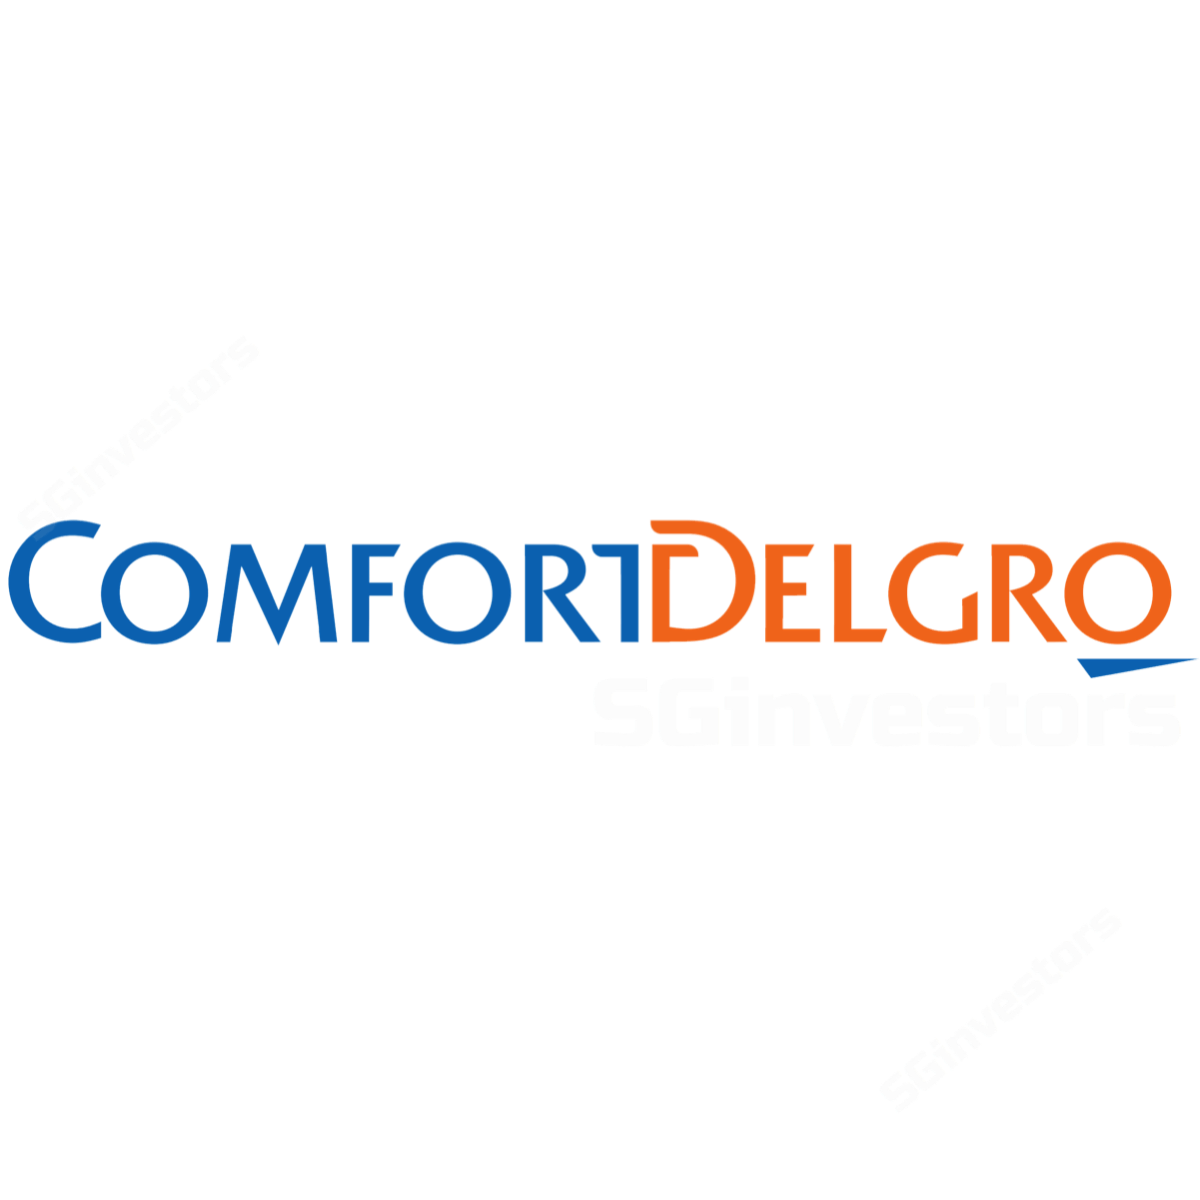 ComfortDelGro Corporation - RHB Invest 2018-02-20: CCS Extends Review Of Alliance With Uber